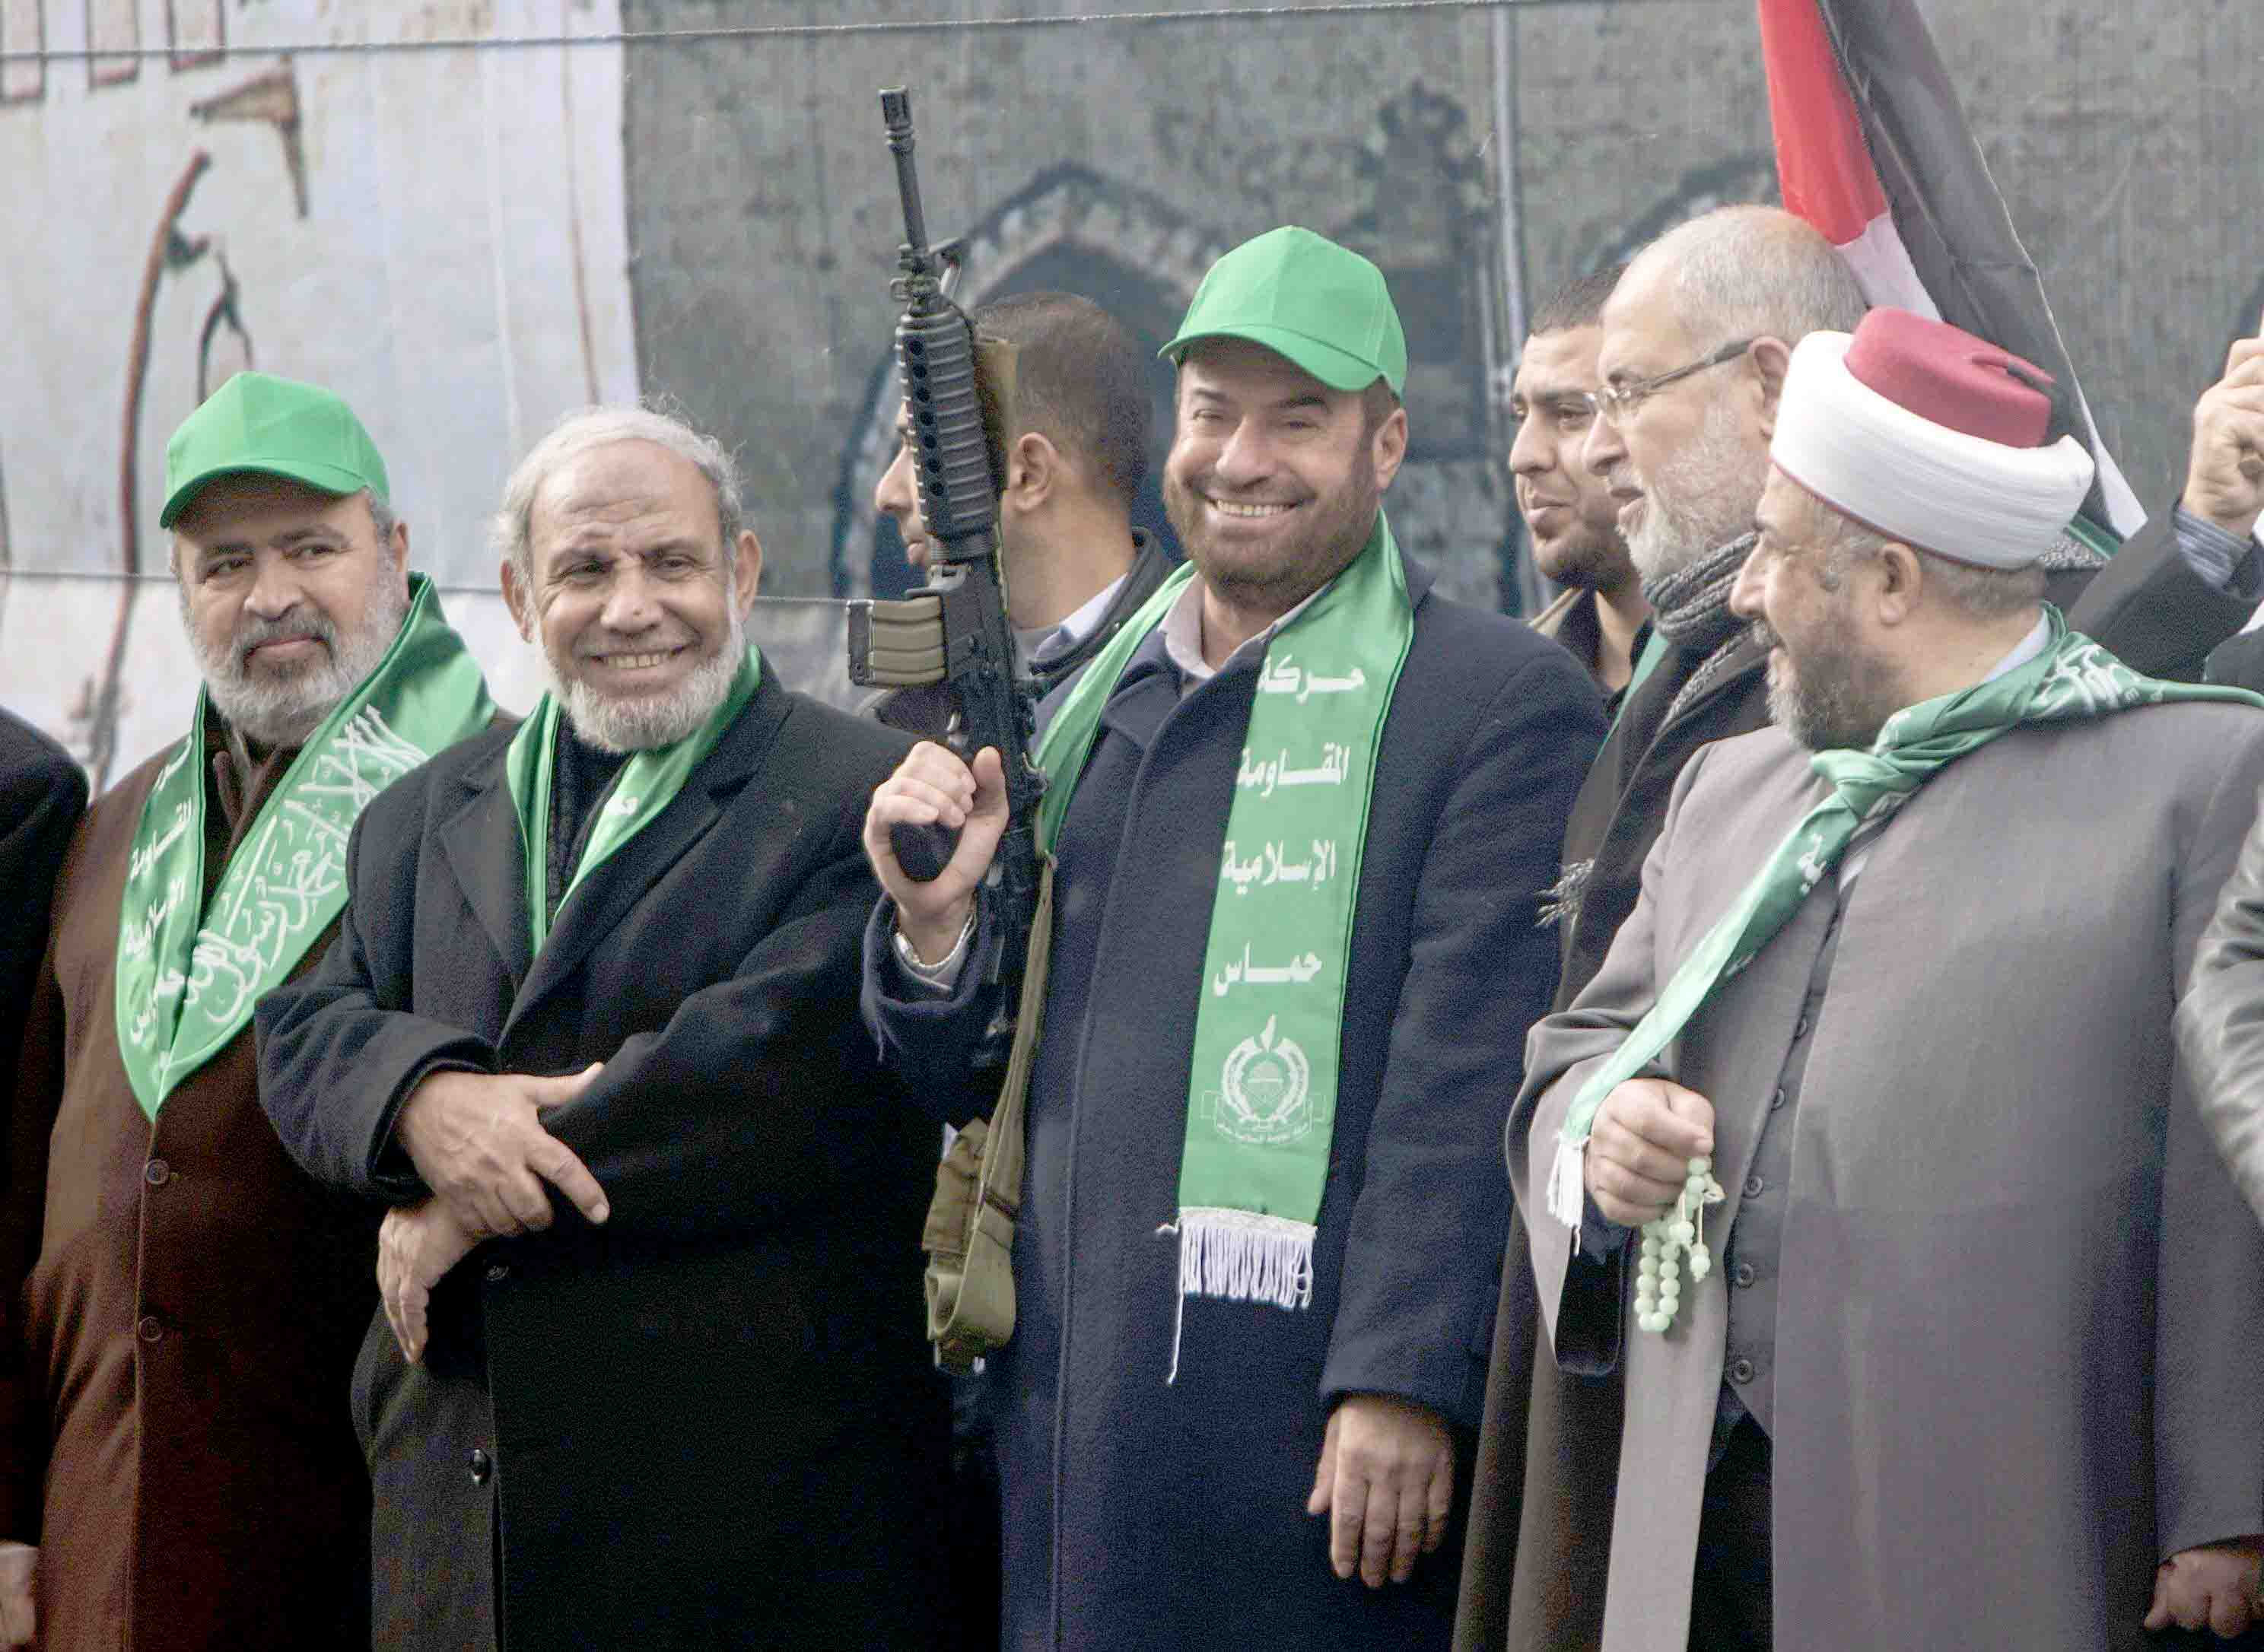 Same old show. A 2016 file picture show Hamas leaders Fathi Hammad (3L) and Mahmoud al-Zahar (2L) take part in a rally in Gaza City. (AFP)